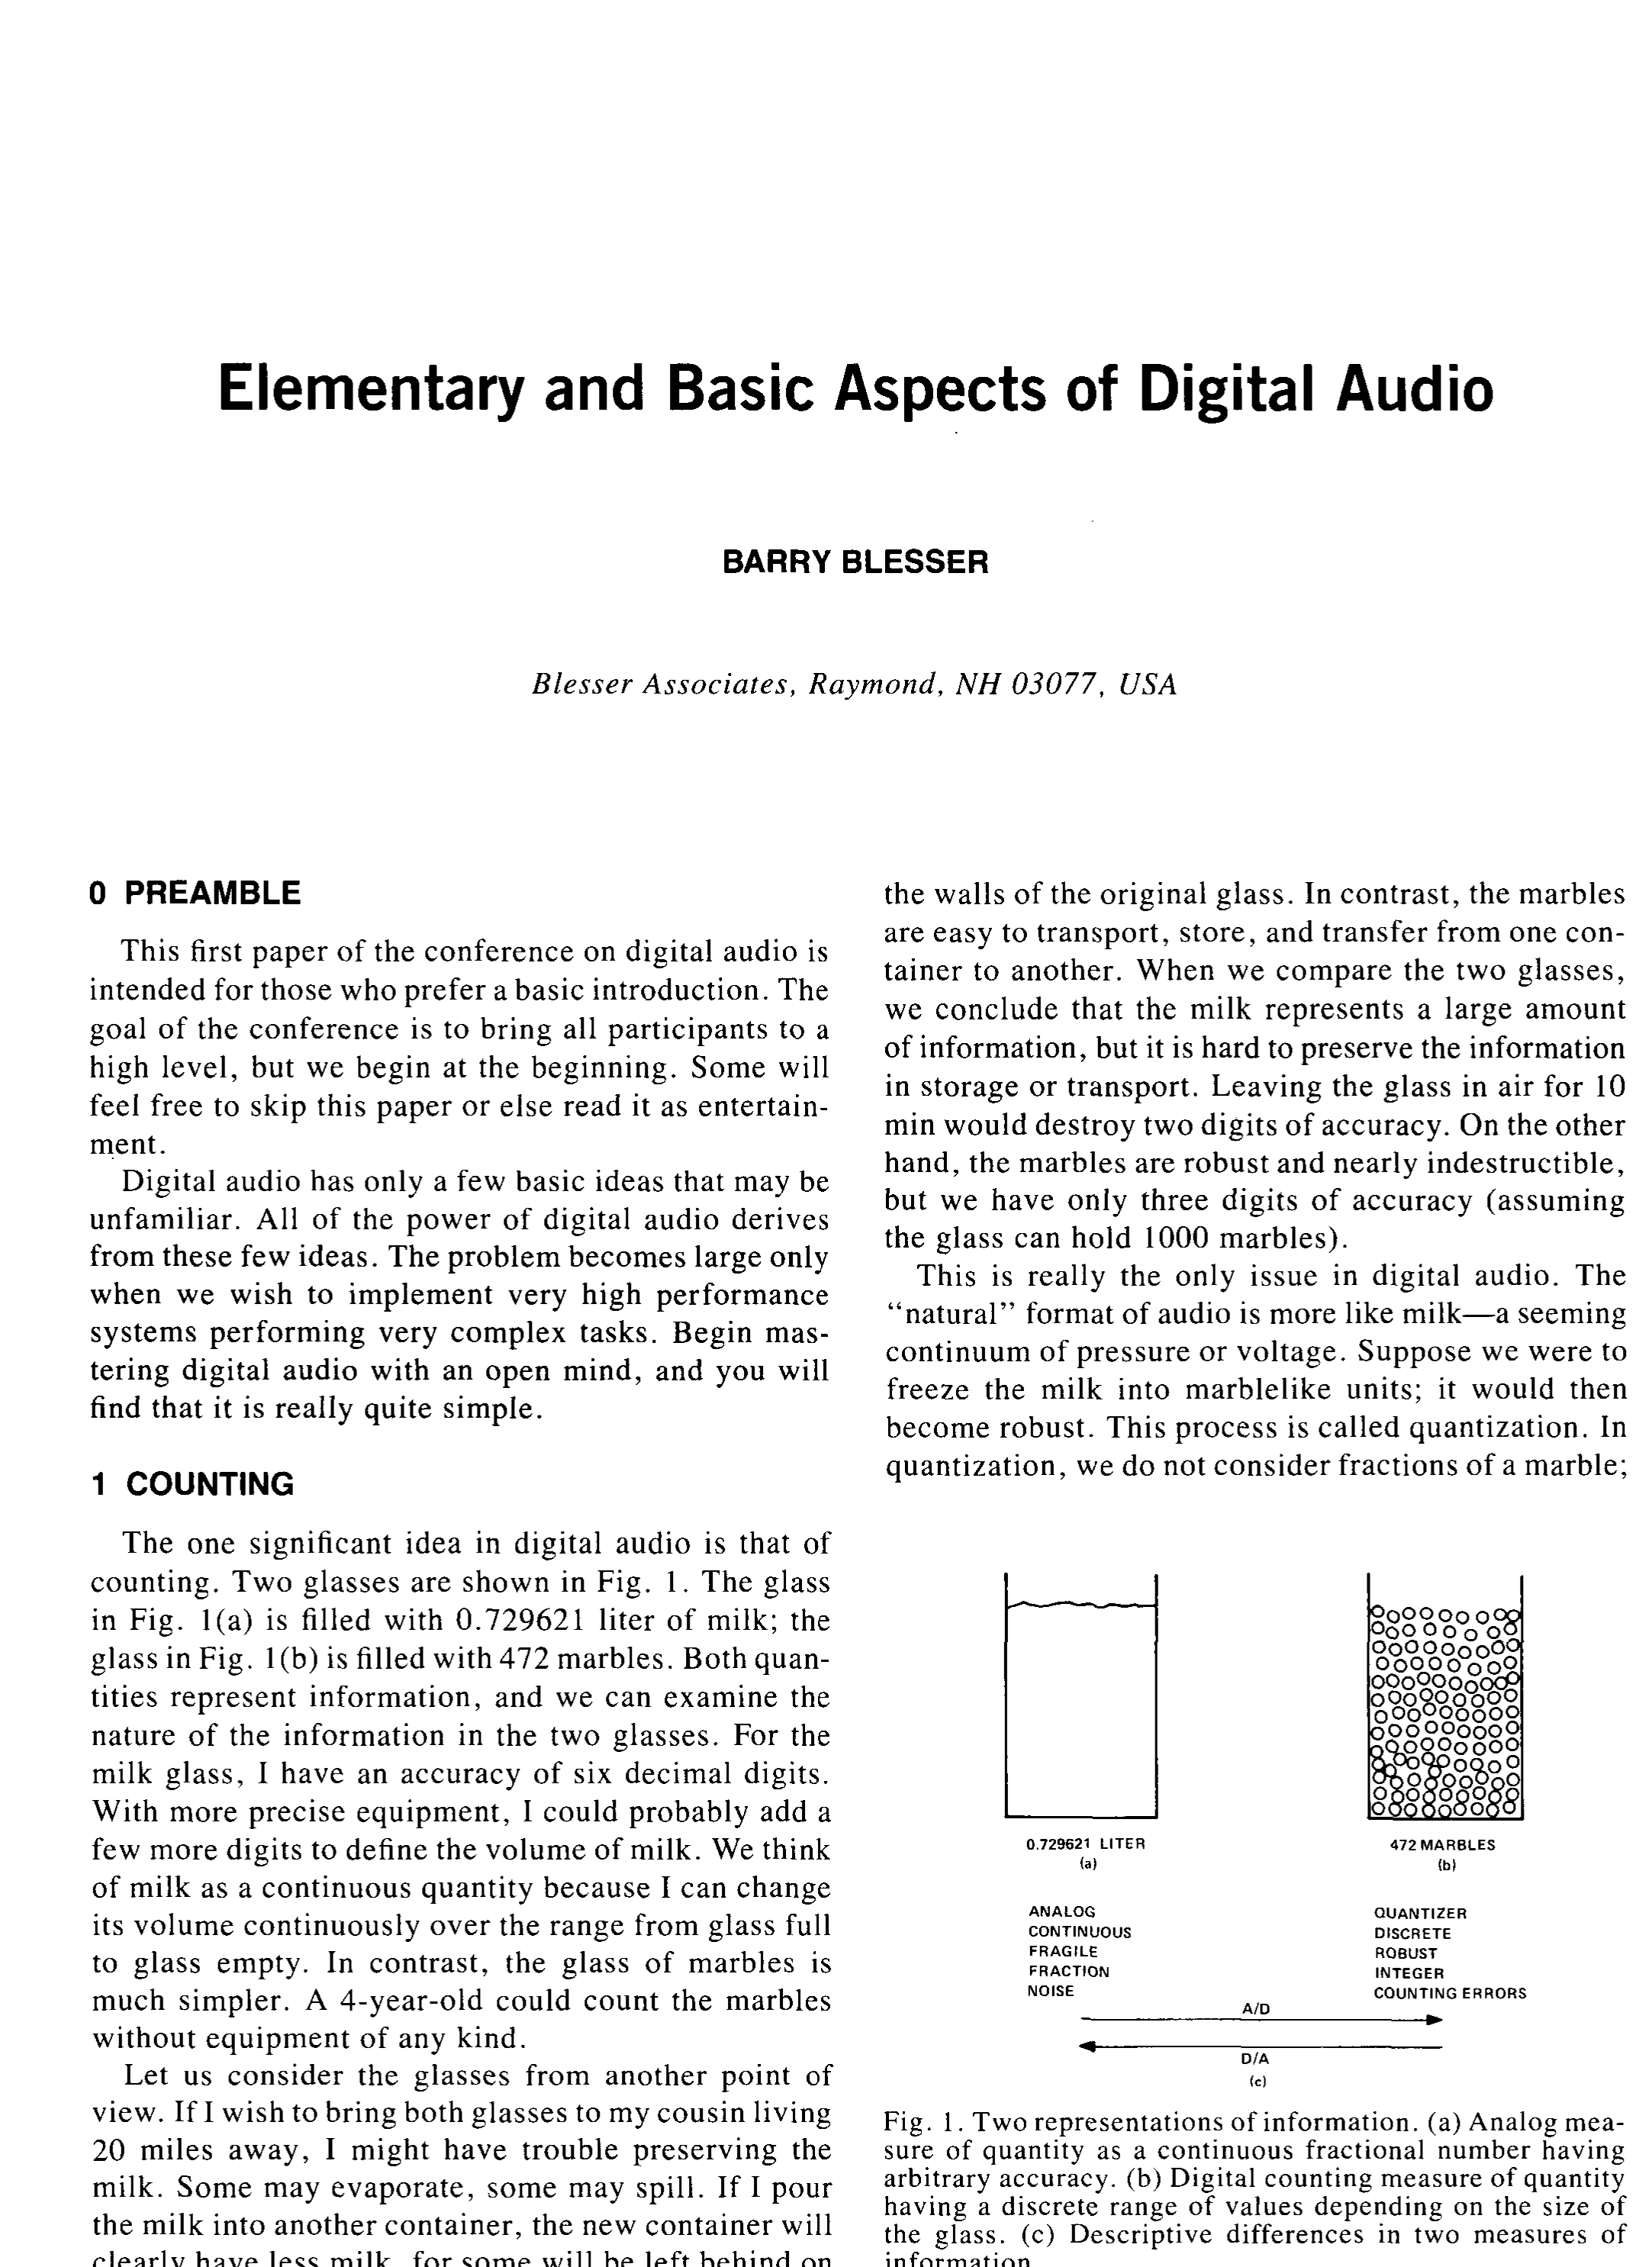 Aes E Library Elementary And Basic Aspects Of Digital Audio Octal High Speed A D Converters